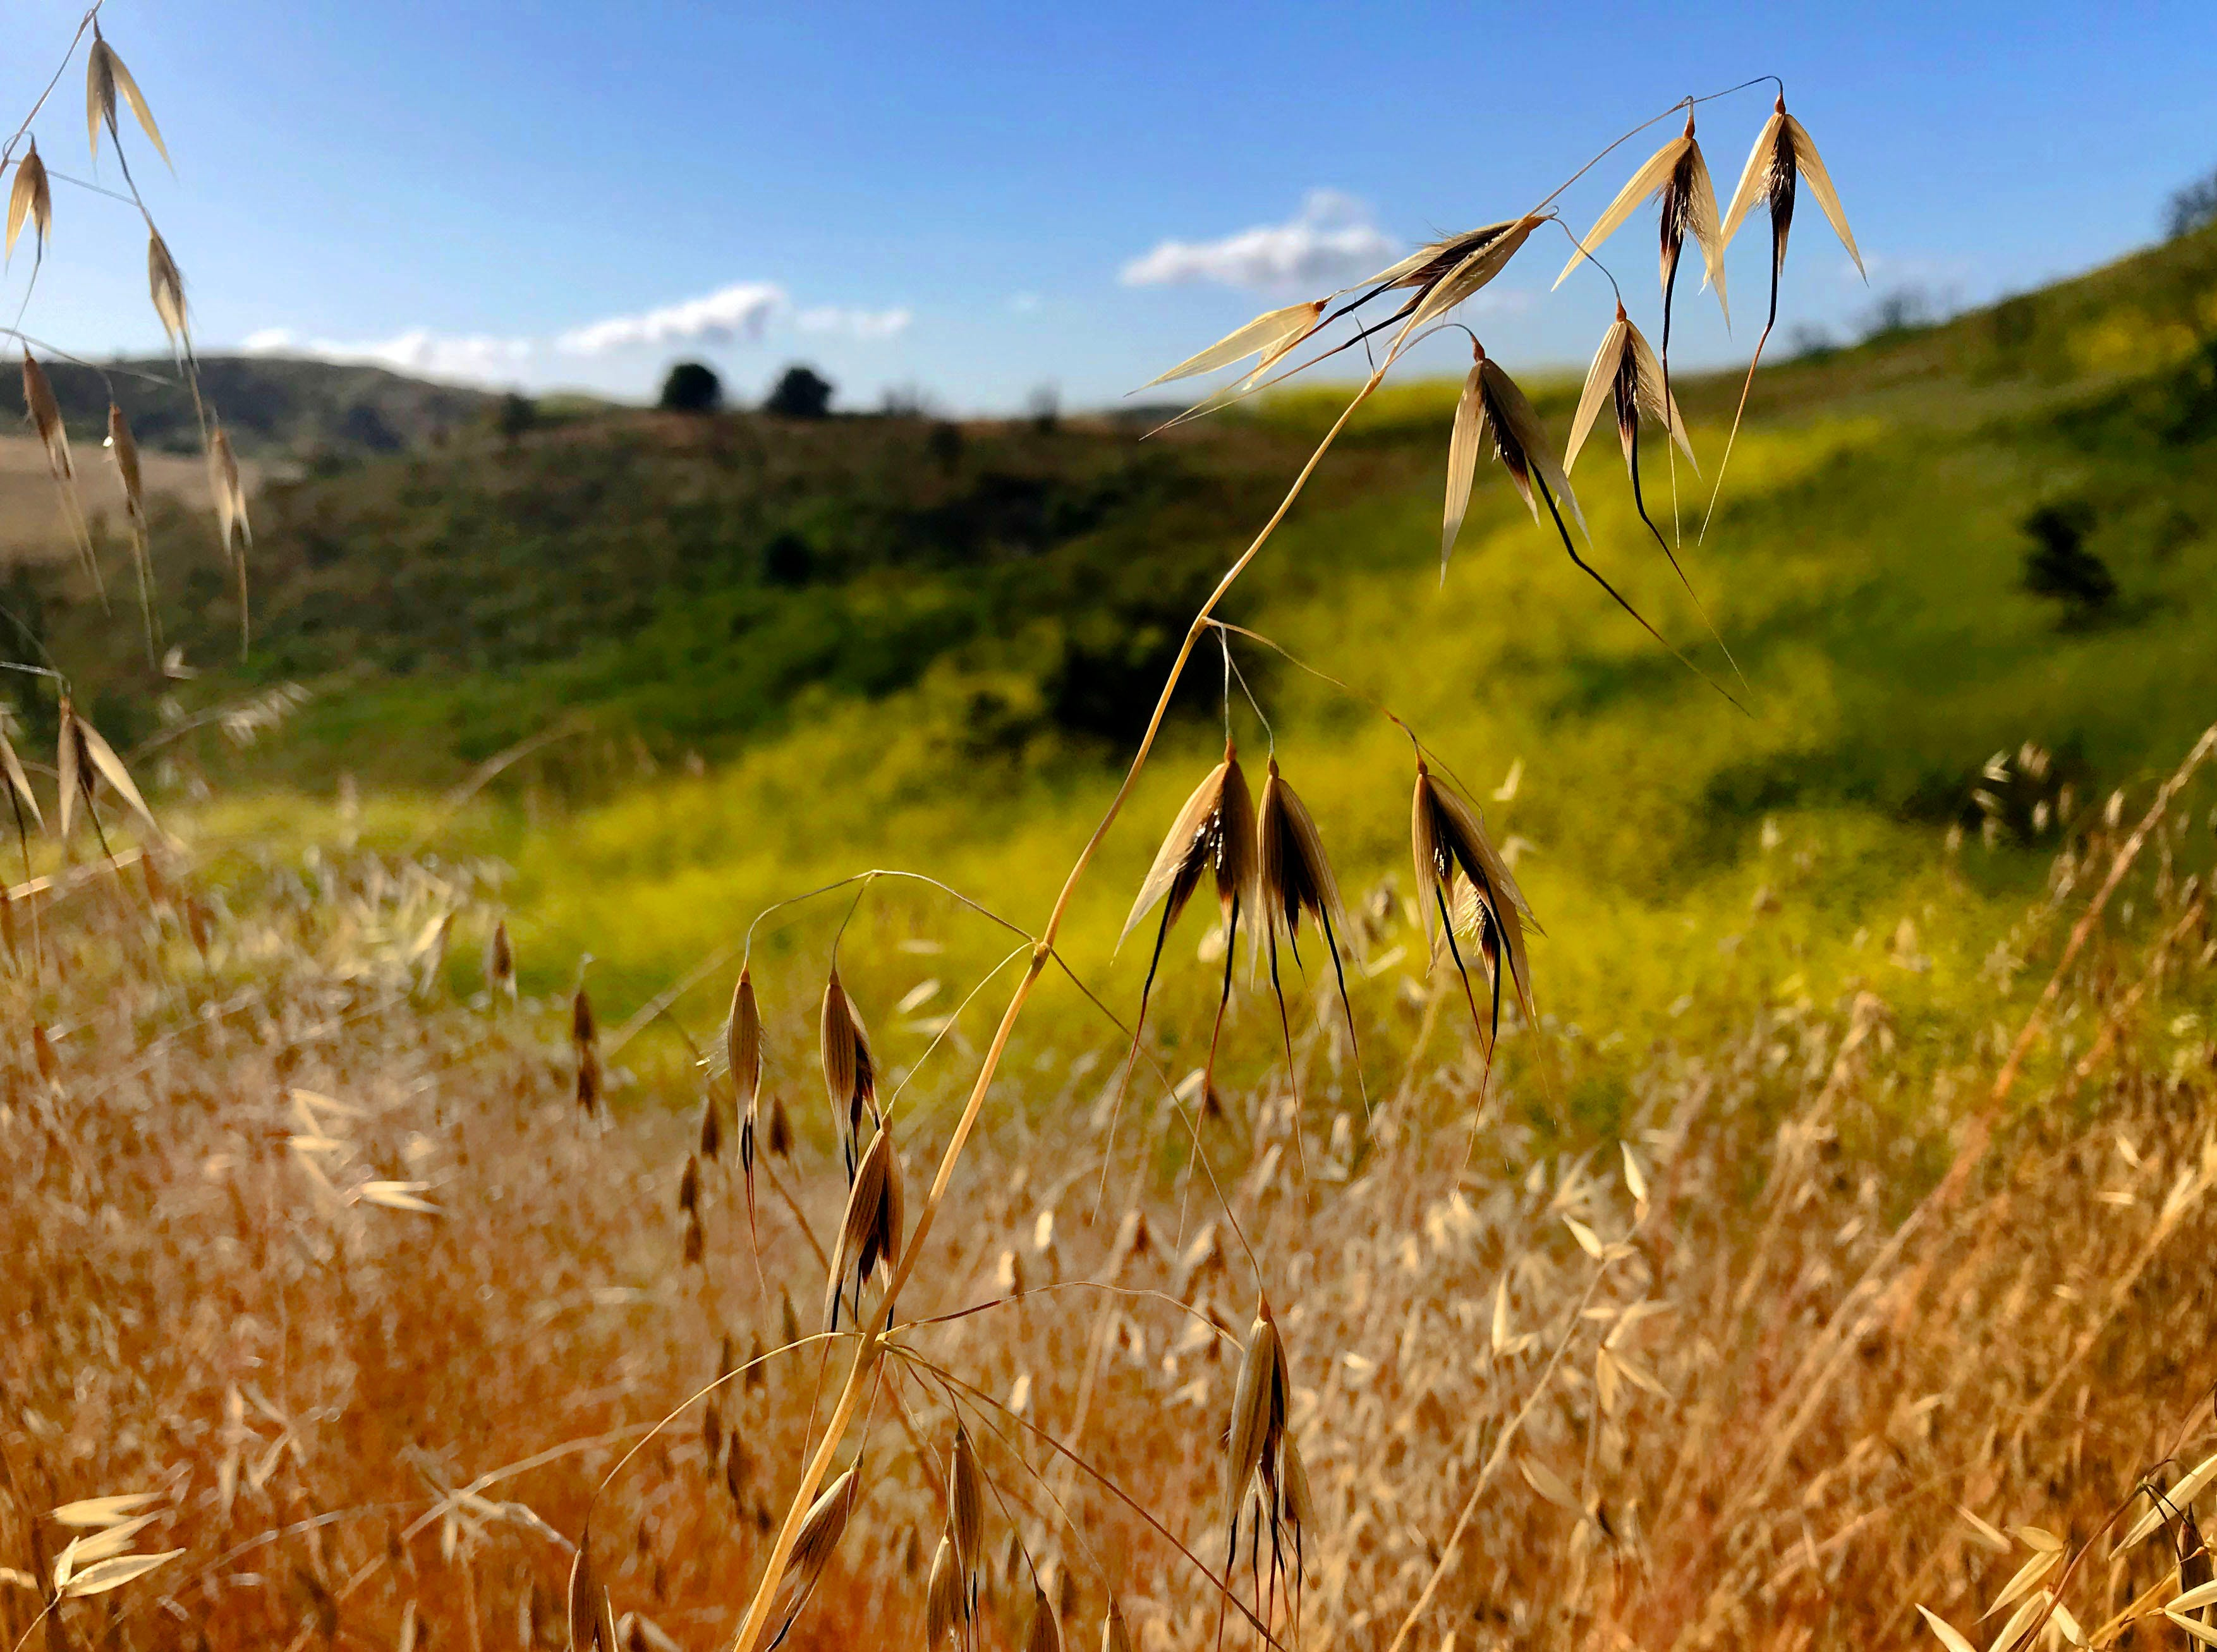 The grass and some of the native plants are turning brown, but black mustard plants continue to flourish along Upper Las Virgenes Trail in the Simi Hills.